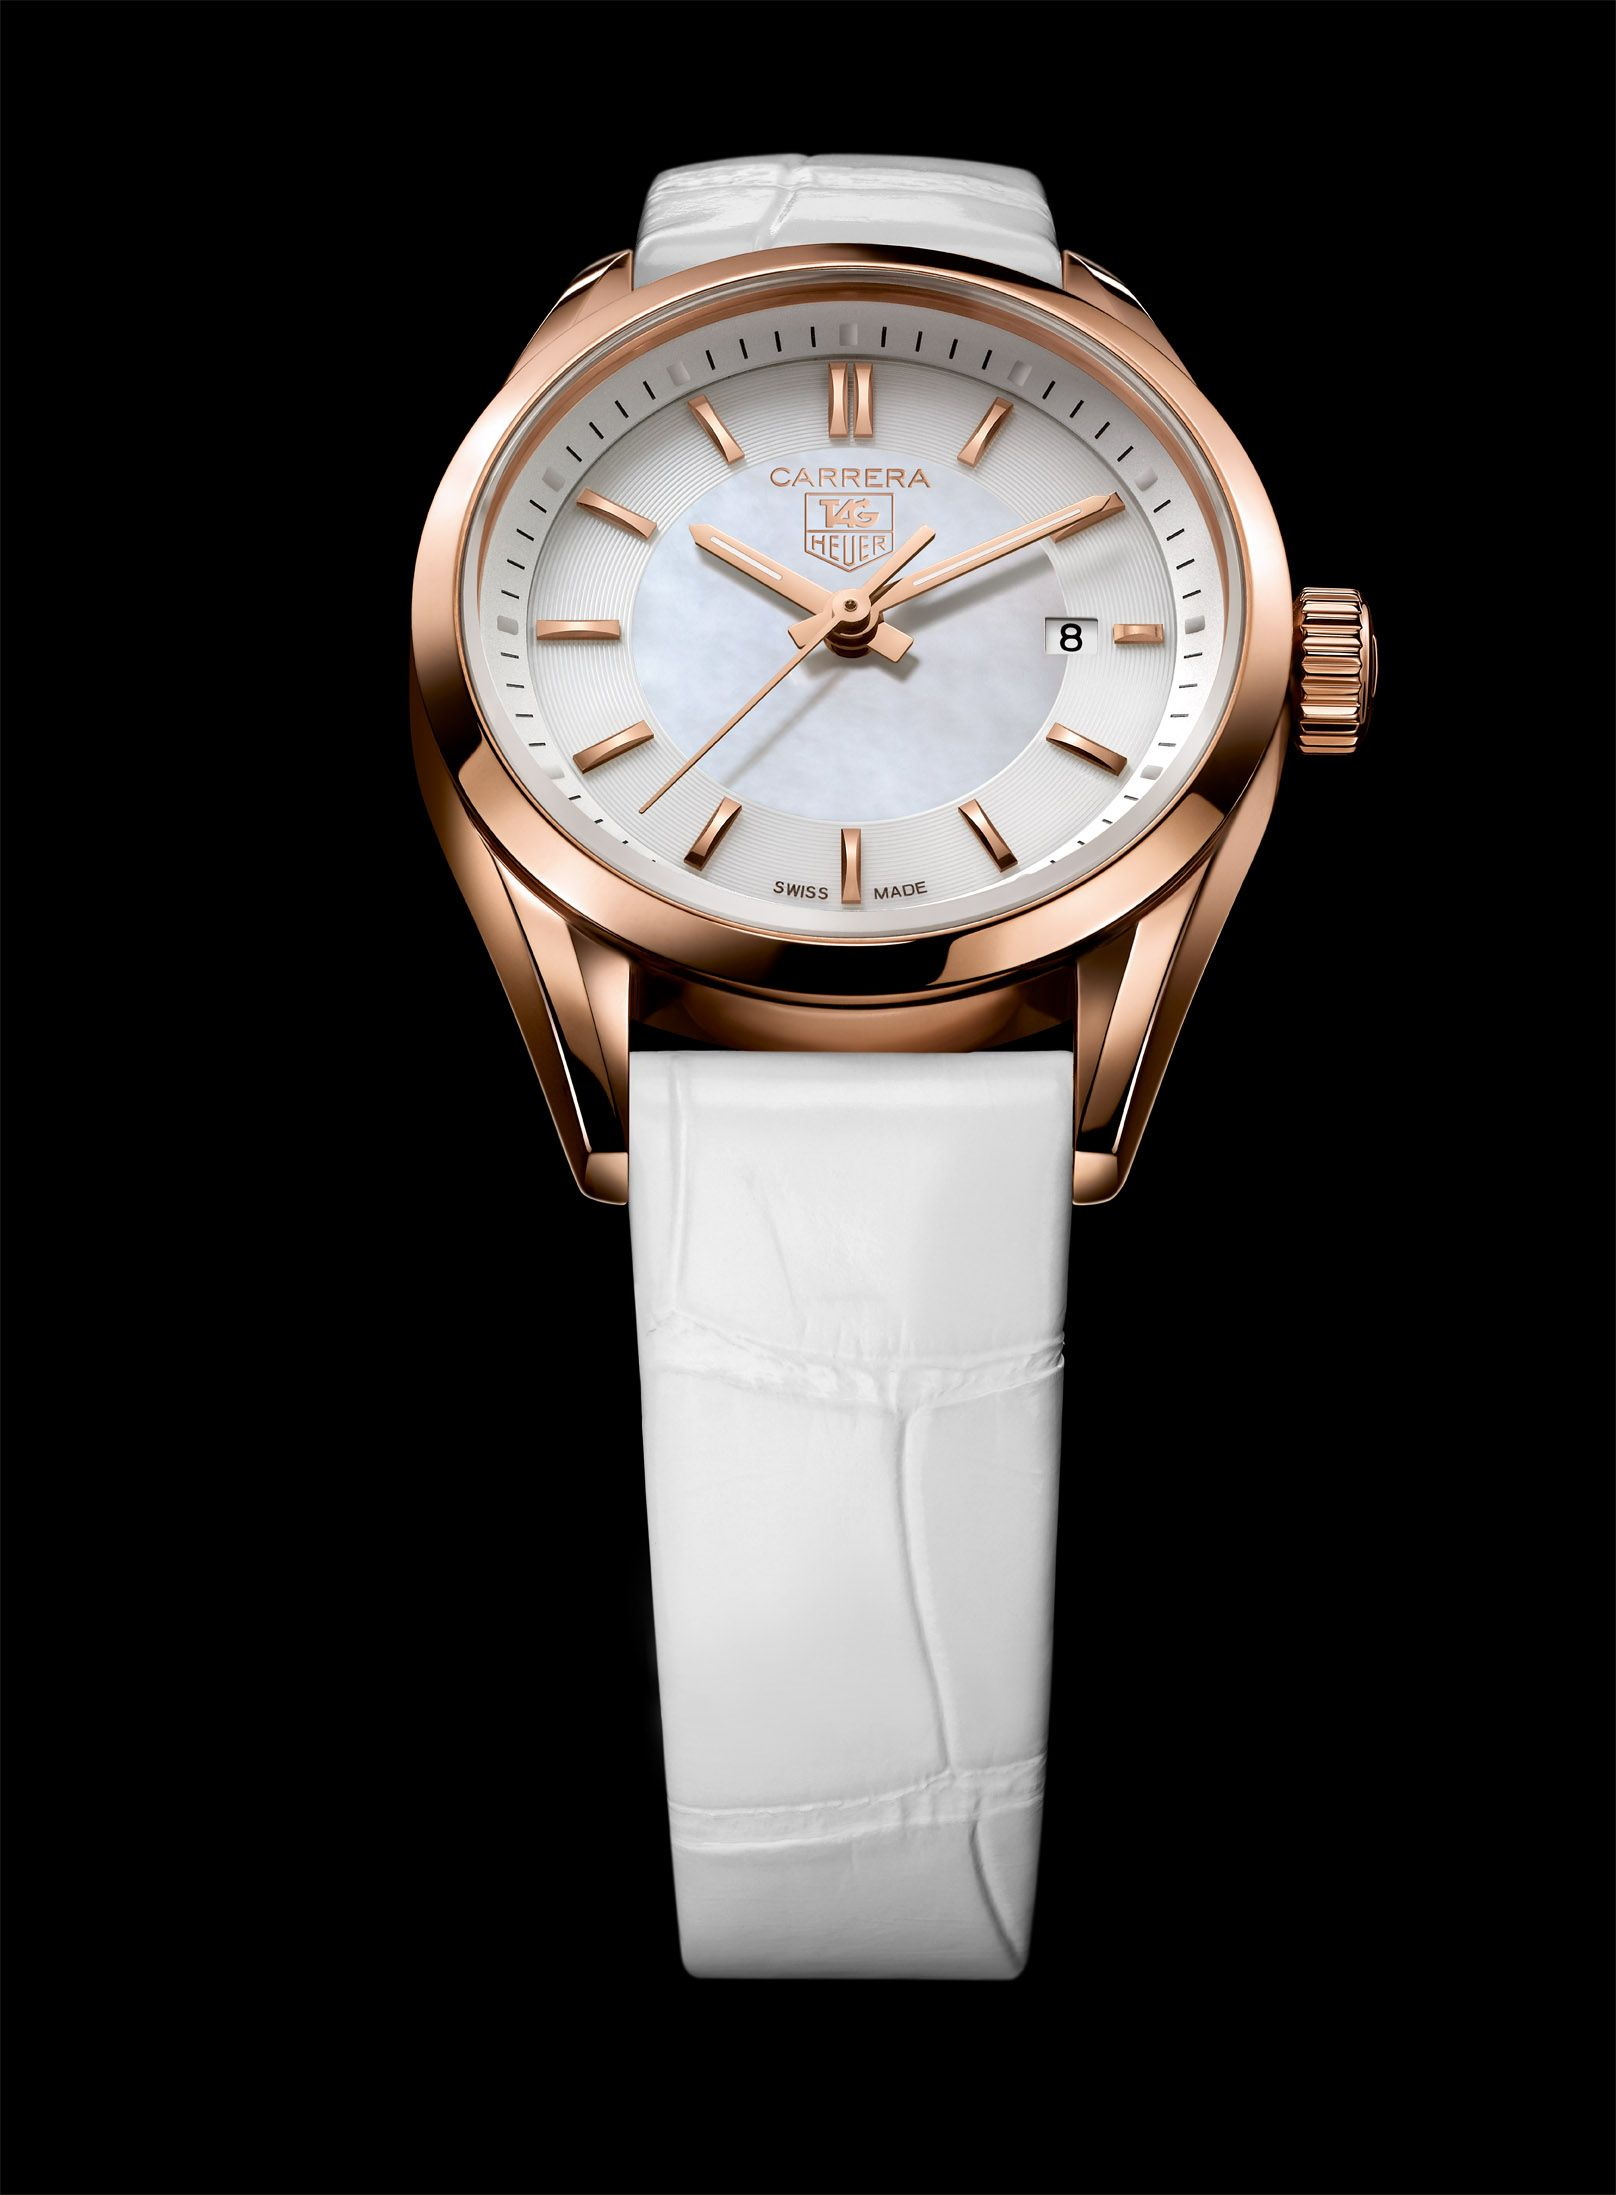 Carrera Lady Rose Gold Tag Heuer Tag Heuer Women Luxury Watches For Men